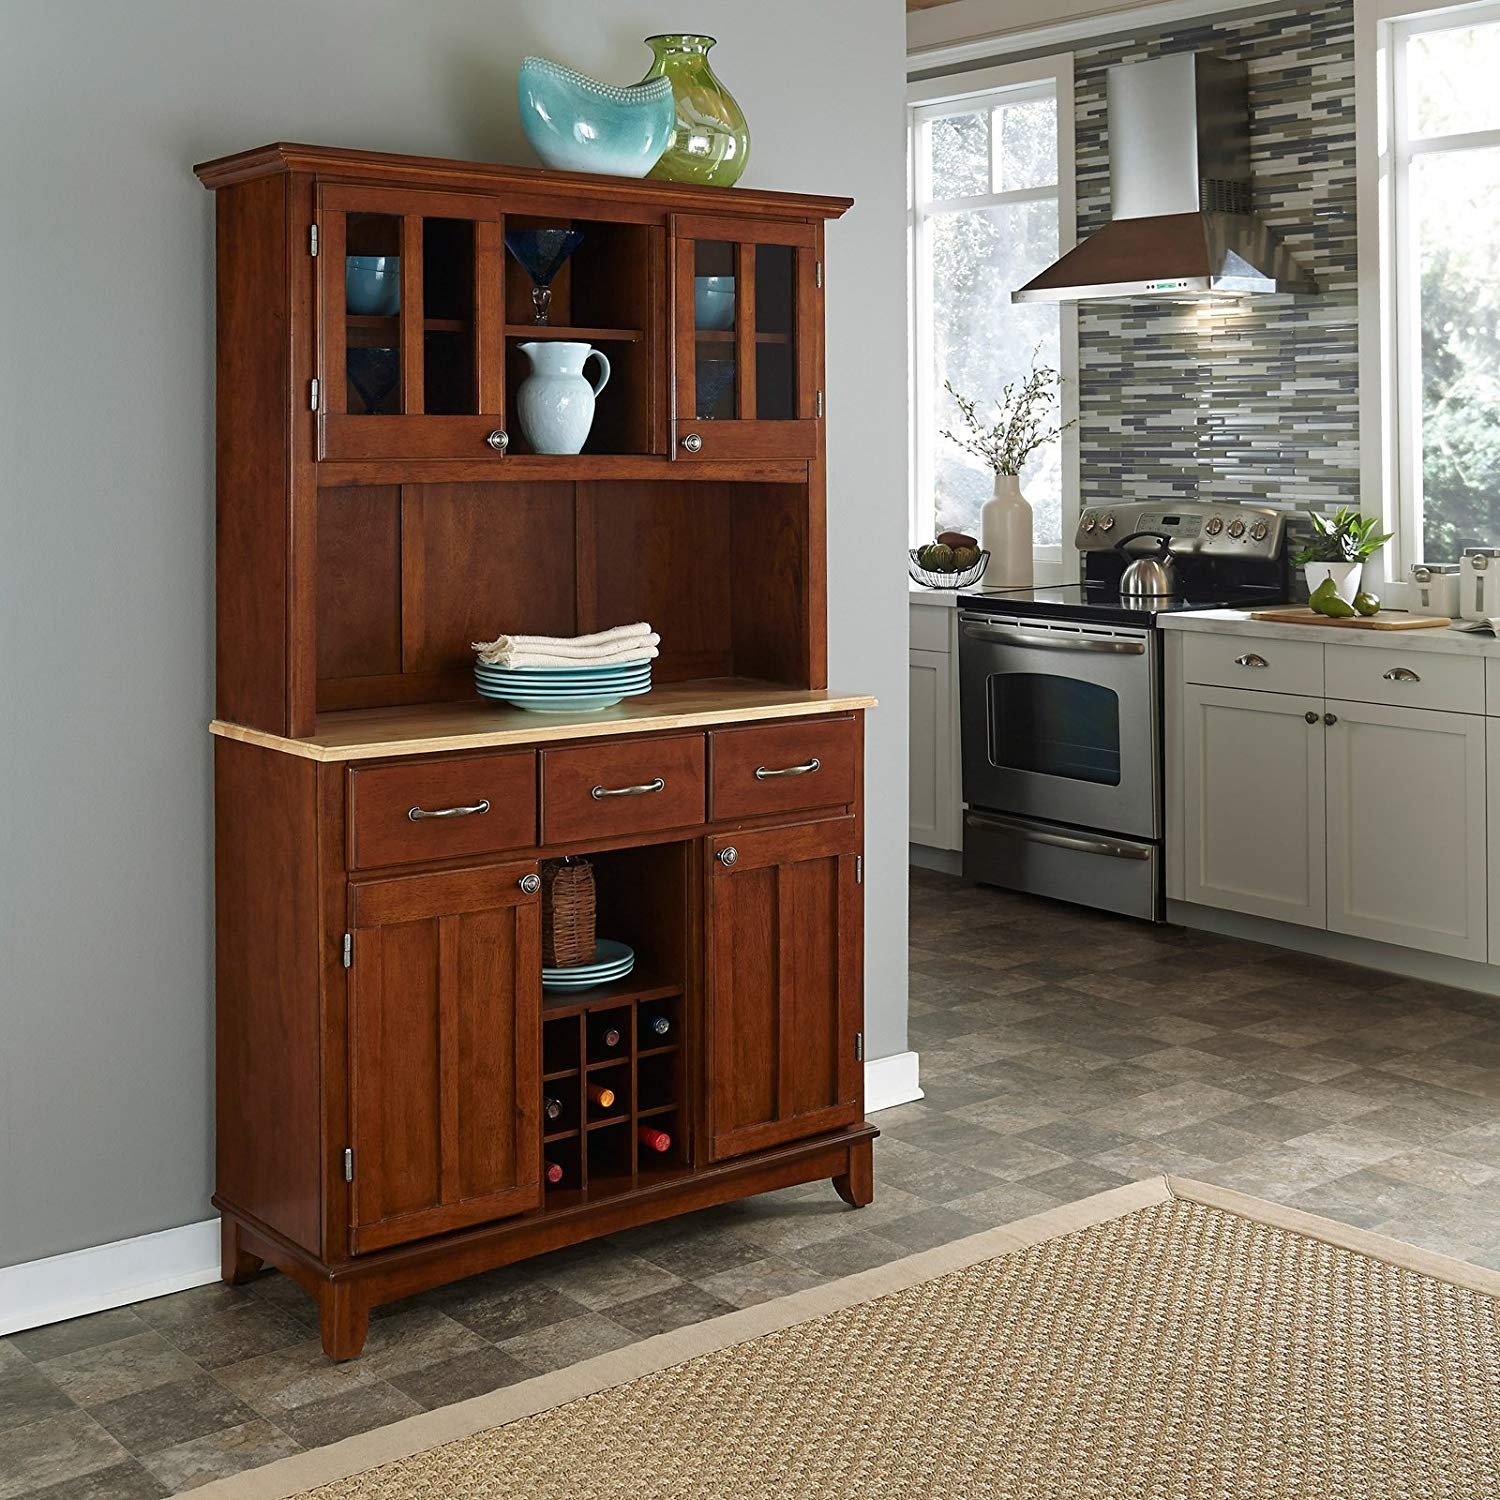 Cheap China Buffet Cabinets 208, Find China Buffet Cabinets With Simple Living Layla Black Buffets (View 12 of 30)